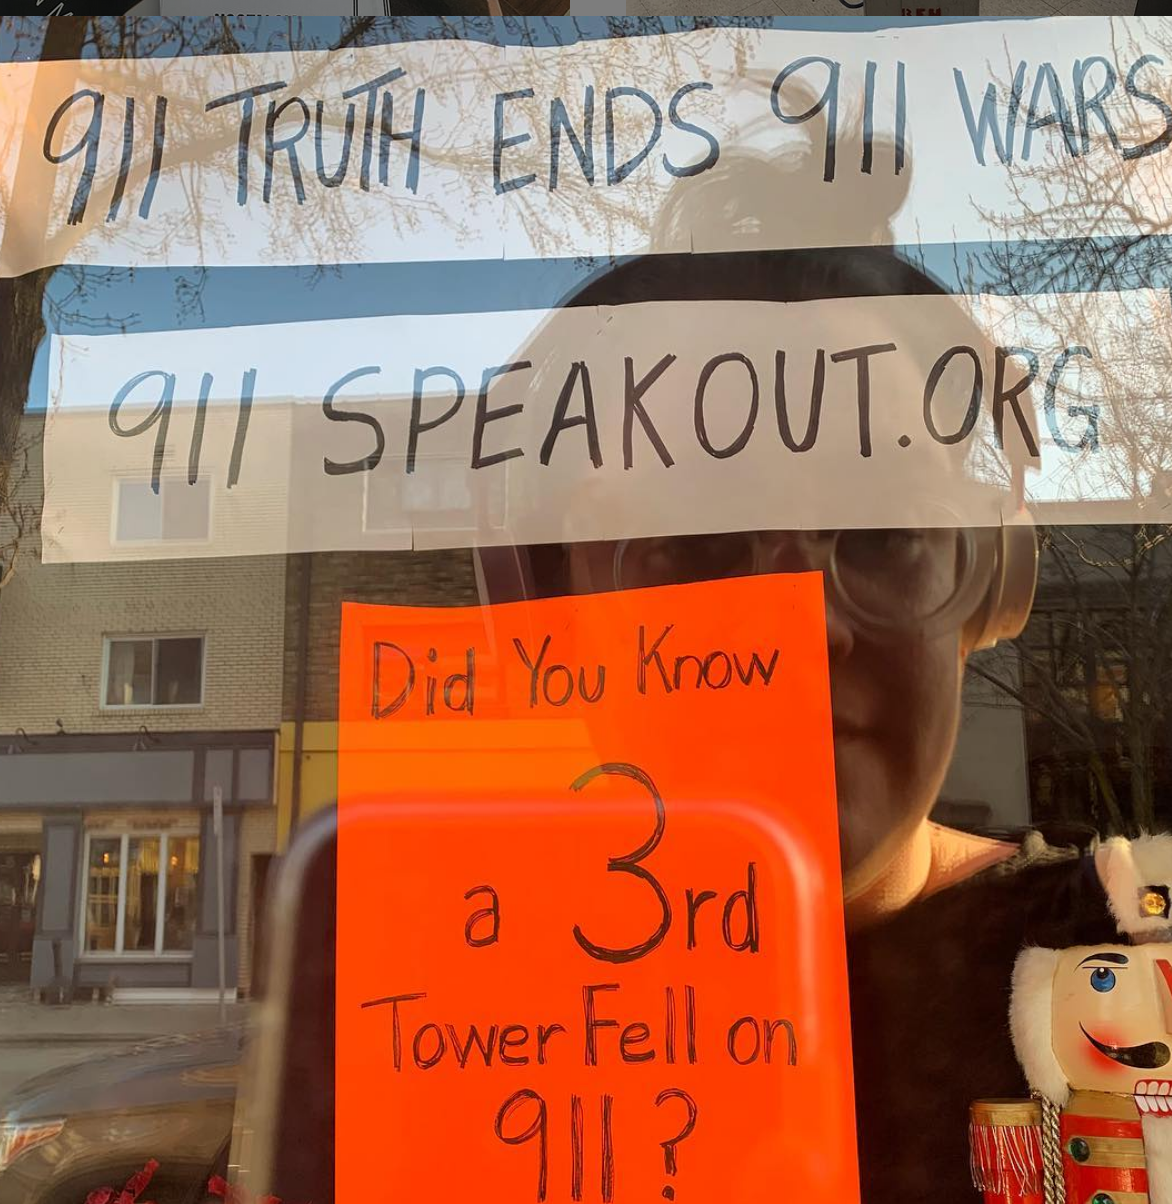 """As a completely unrelated sidenote, I have a neighbor who uses his front window as a 9/11 conspiracy theory display year round but sometimes adds seasonal decor. I've also been leaving him (assuming its a him?) notes for the better part of two years trying to get him to talk to me - conspiracy research is....challenging."" -Stacy Wood"